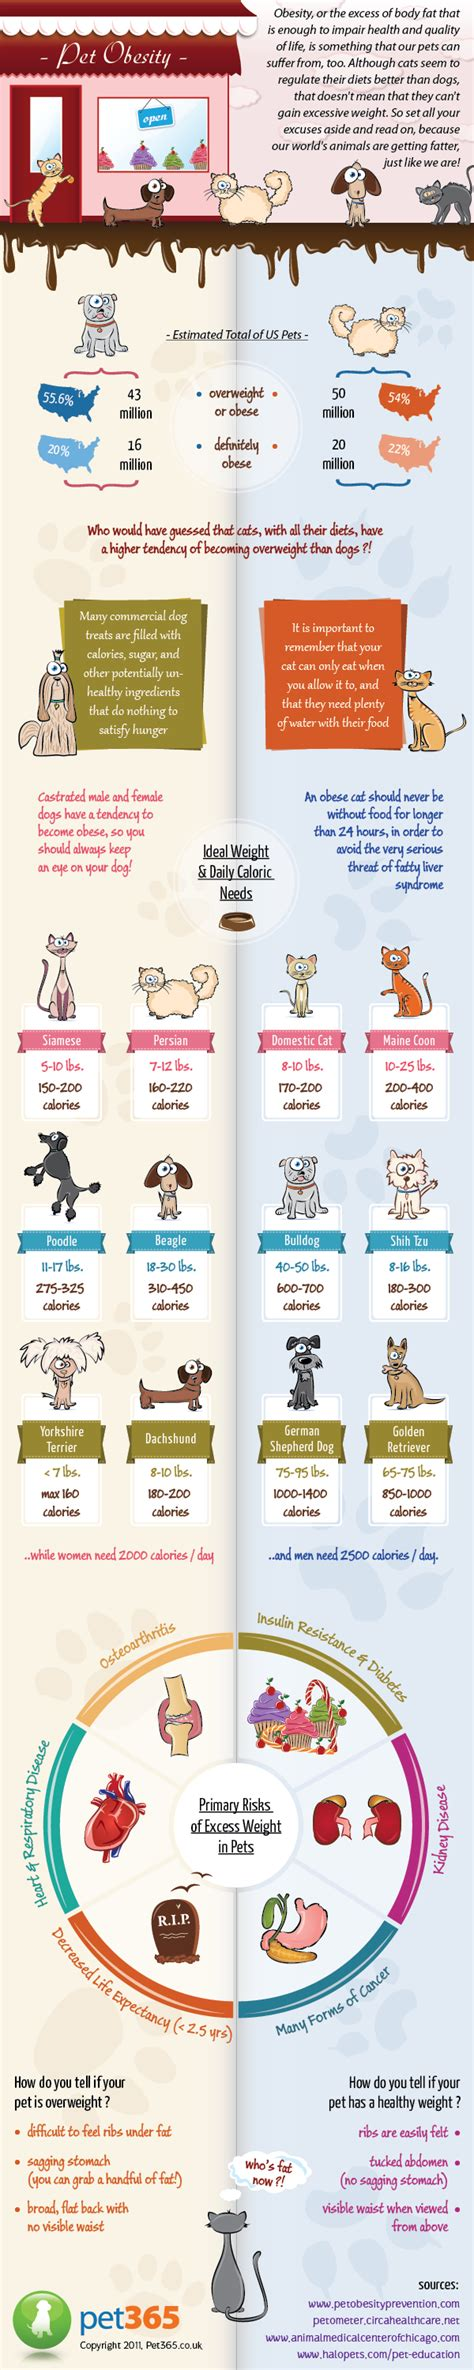 the human psyche and the pet obesity epidemic pet obesity infographic infographic list